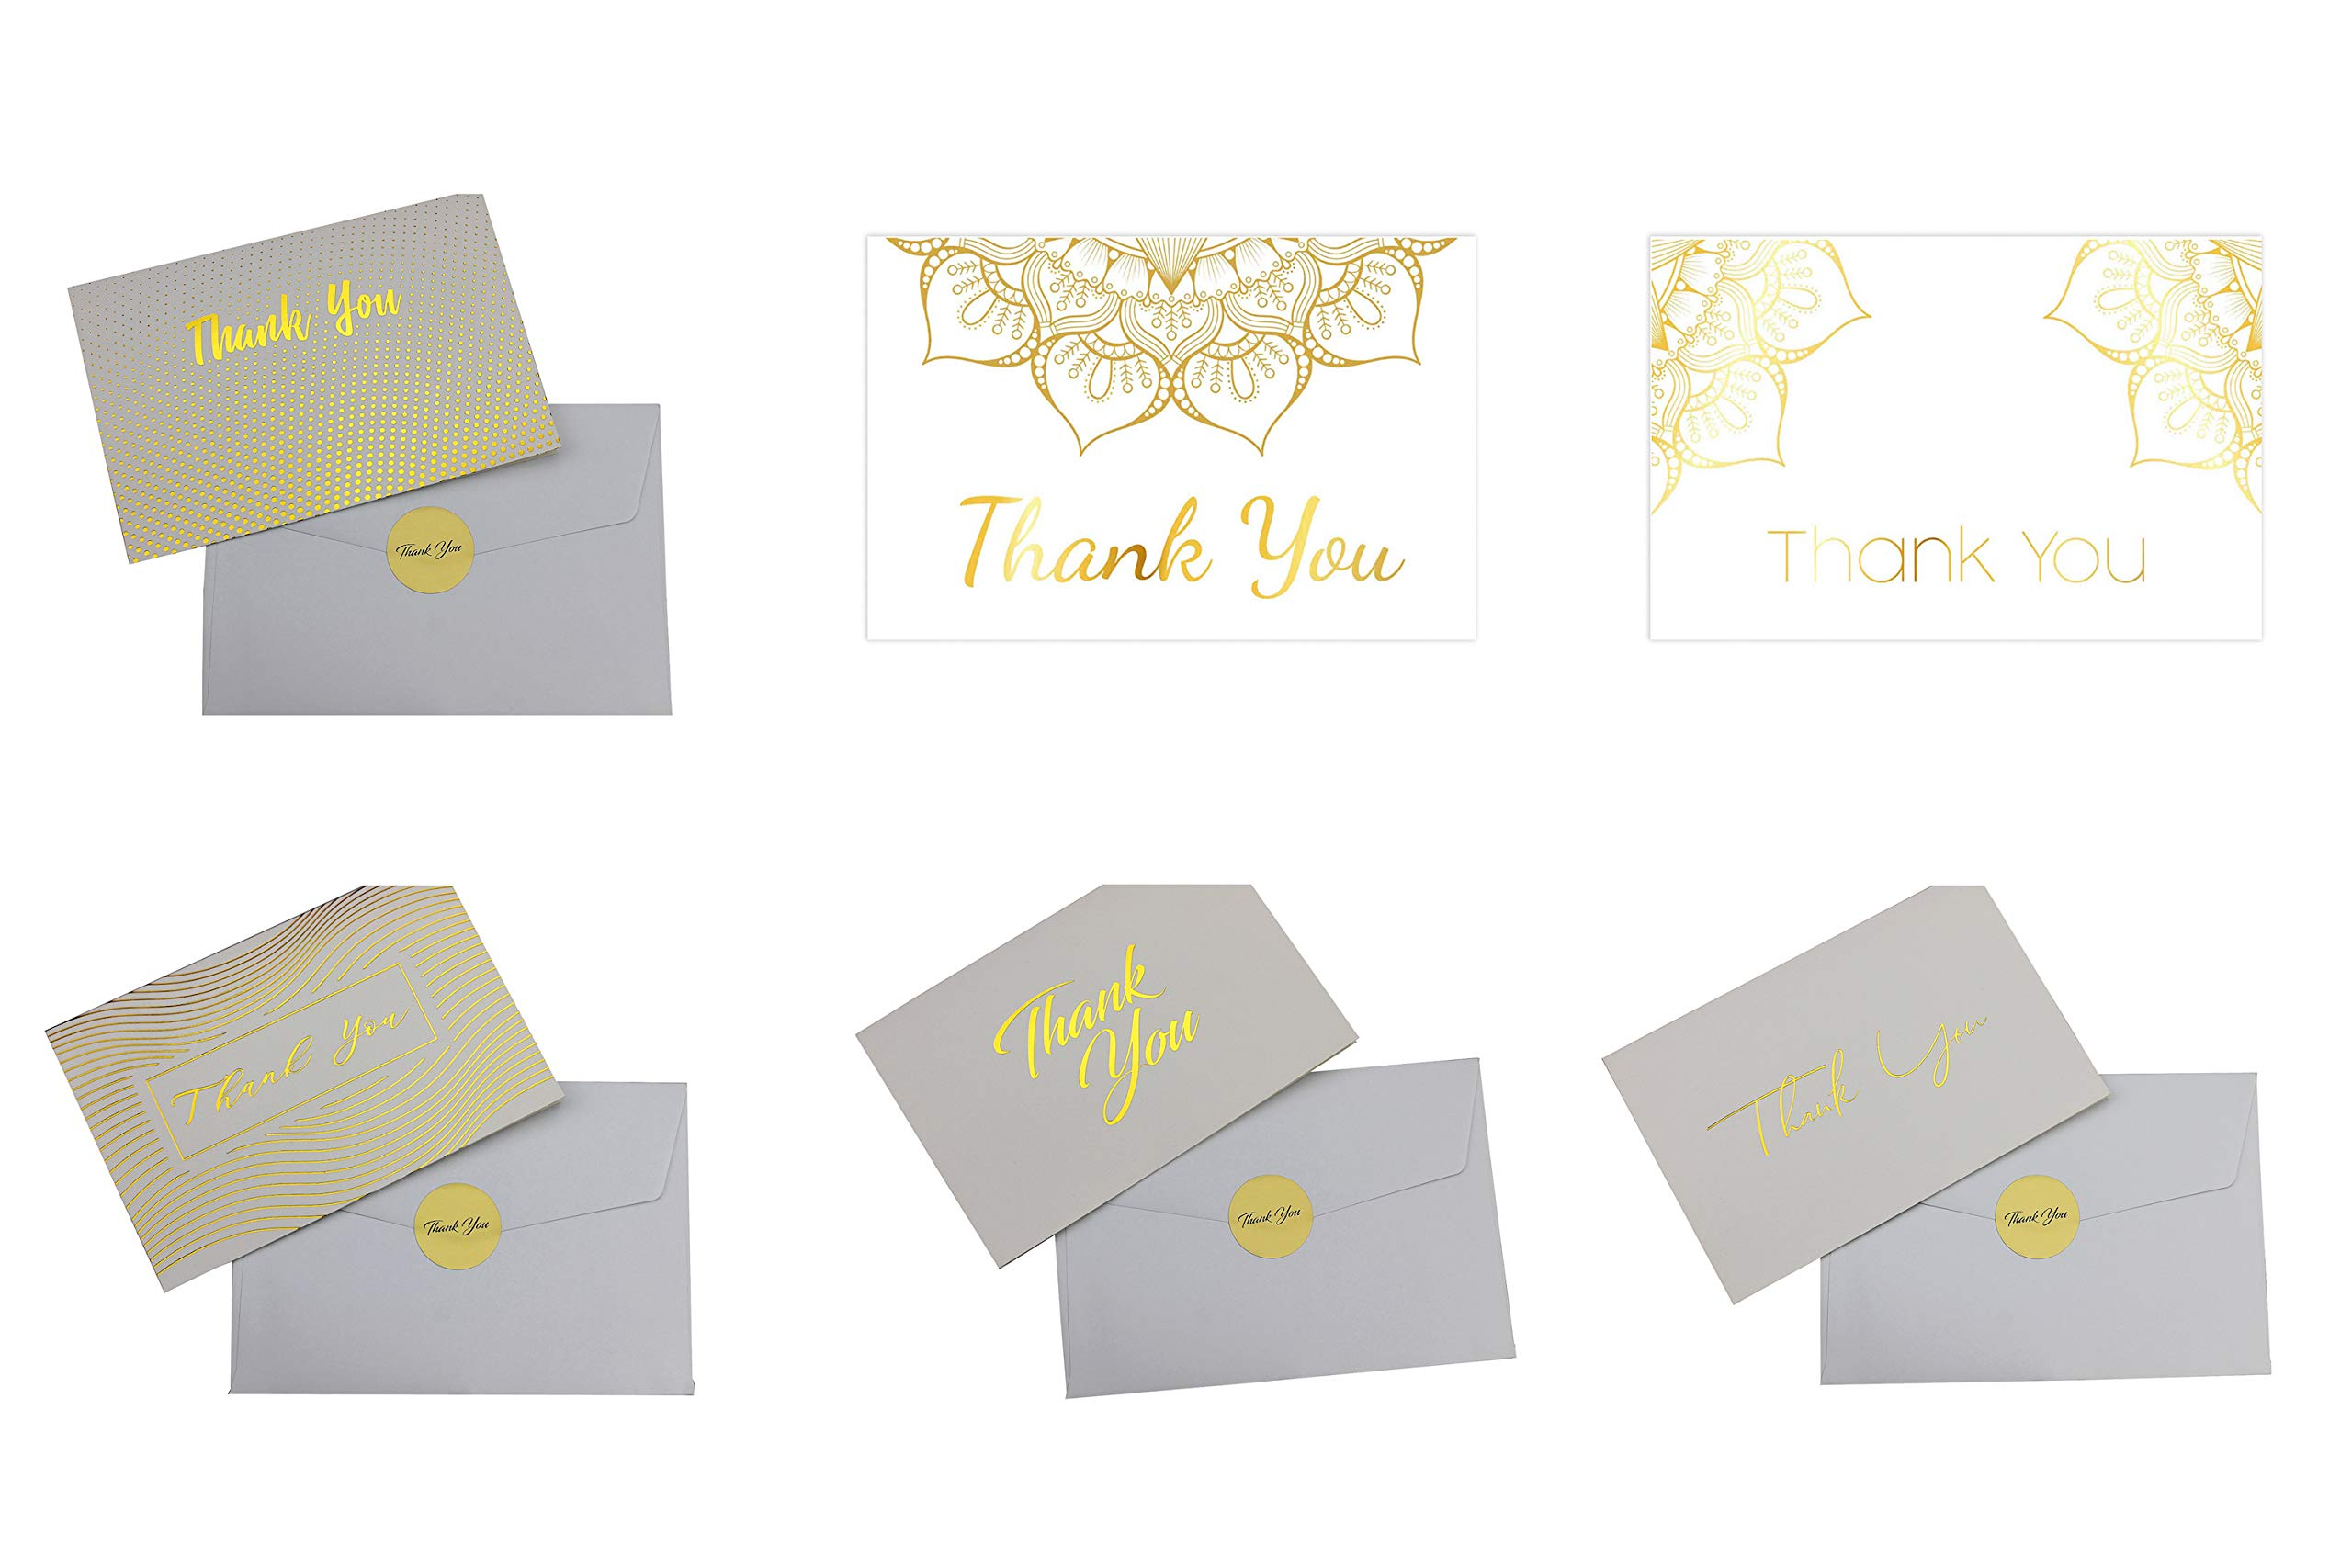 Elegant 100 Thank You Cards with 4x6 Envelopes and Stickers. For Baby Shower, Business and Wedding, 6 assorted designs (Gold stamp text - white).